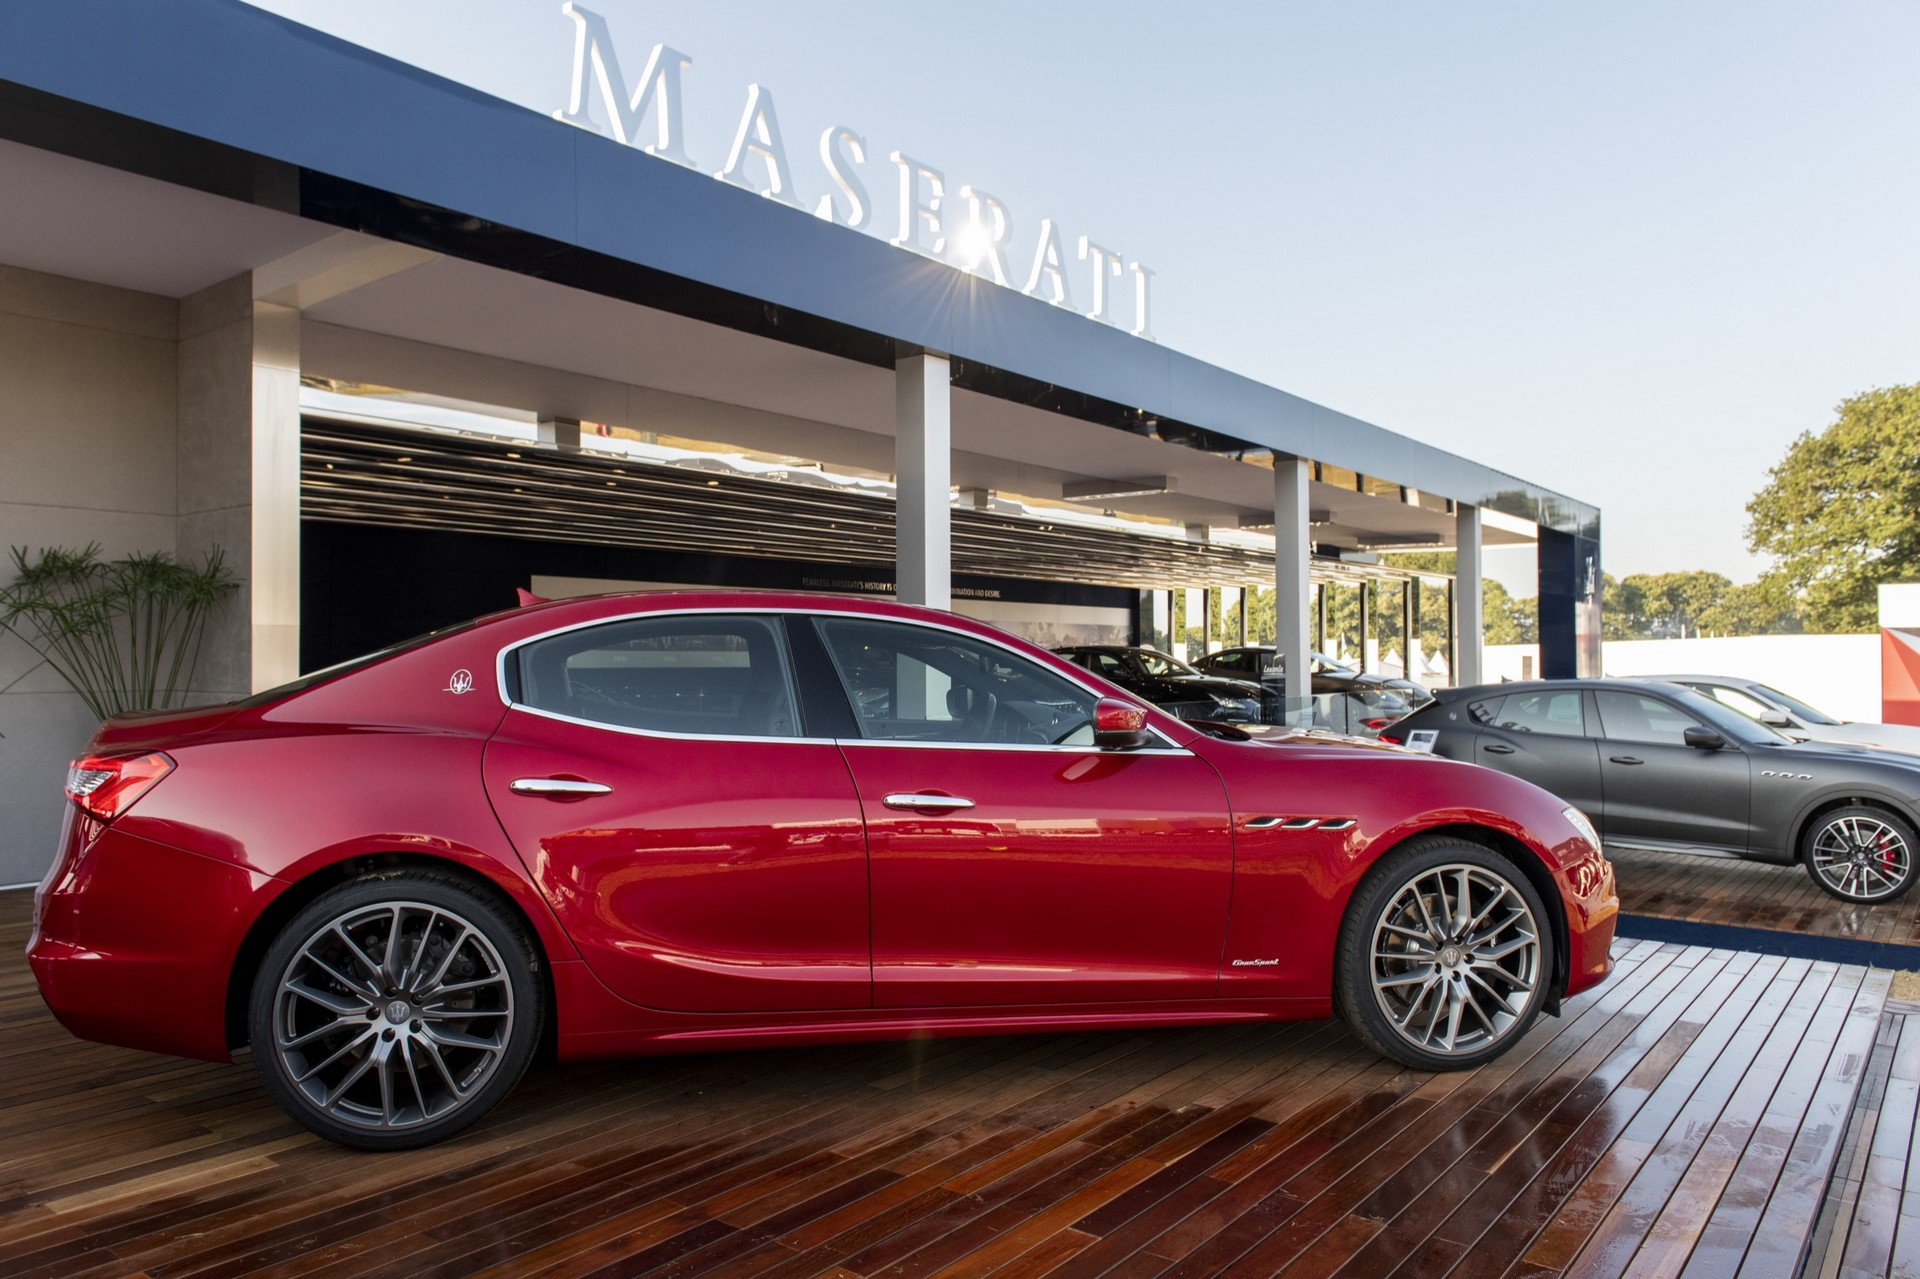 Maserati Ghibli GranSport - Maserati at Goodwood Festival of Speed